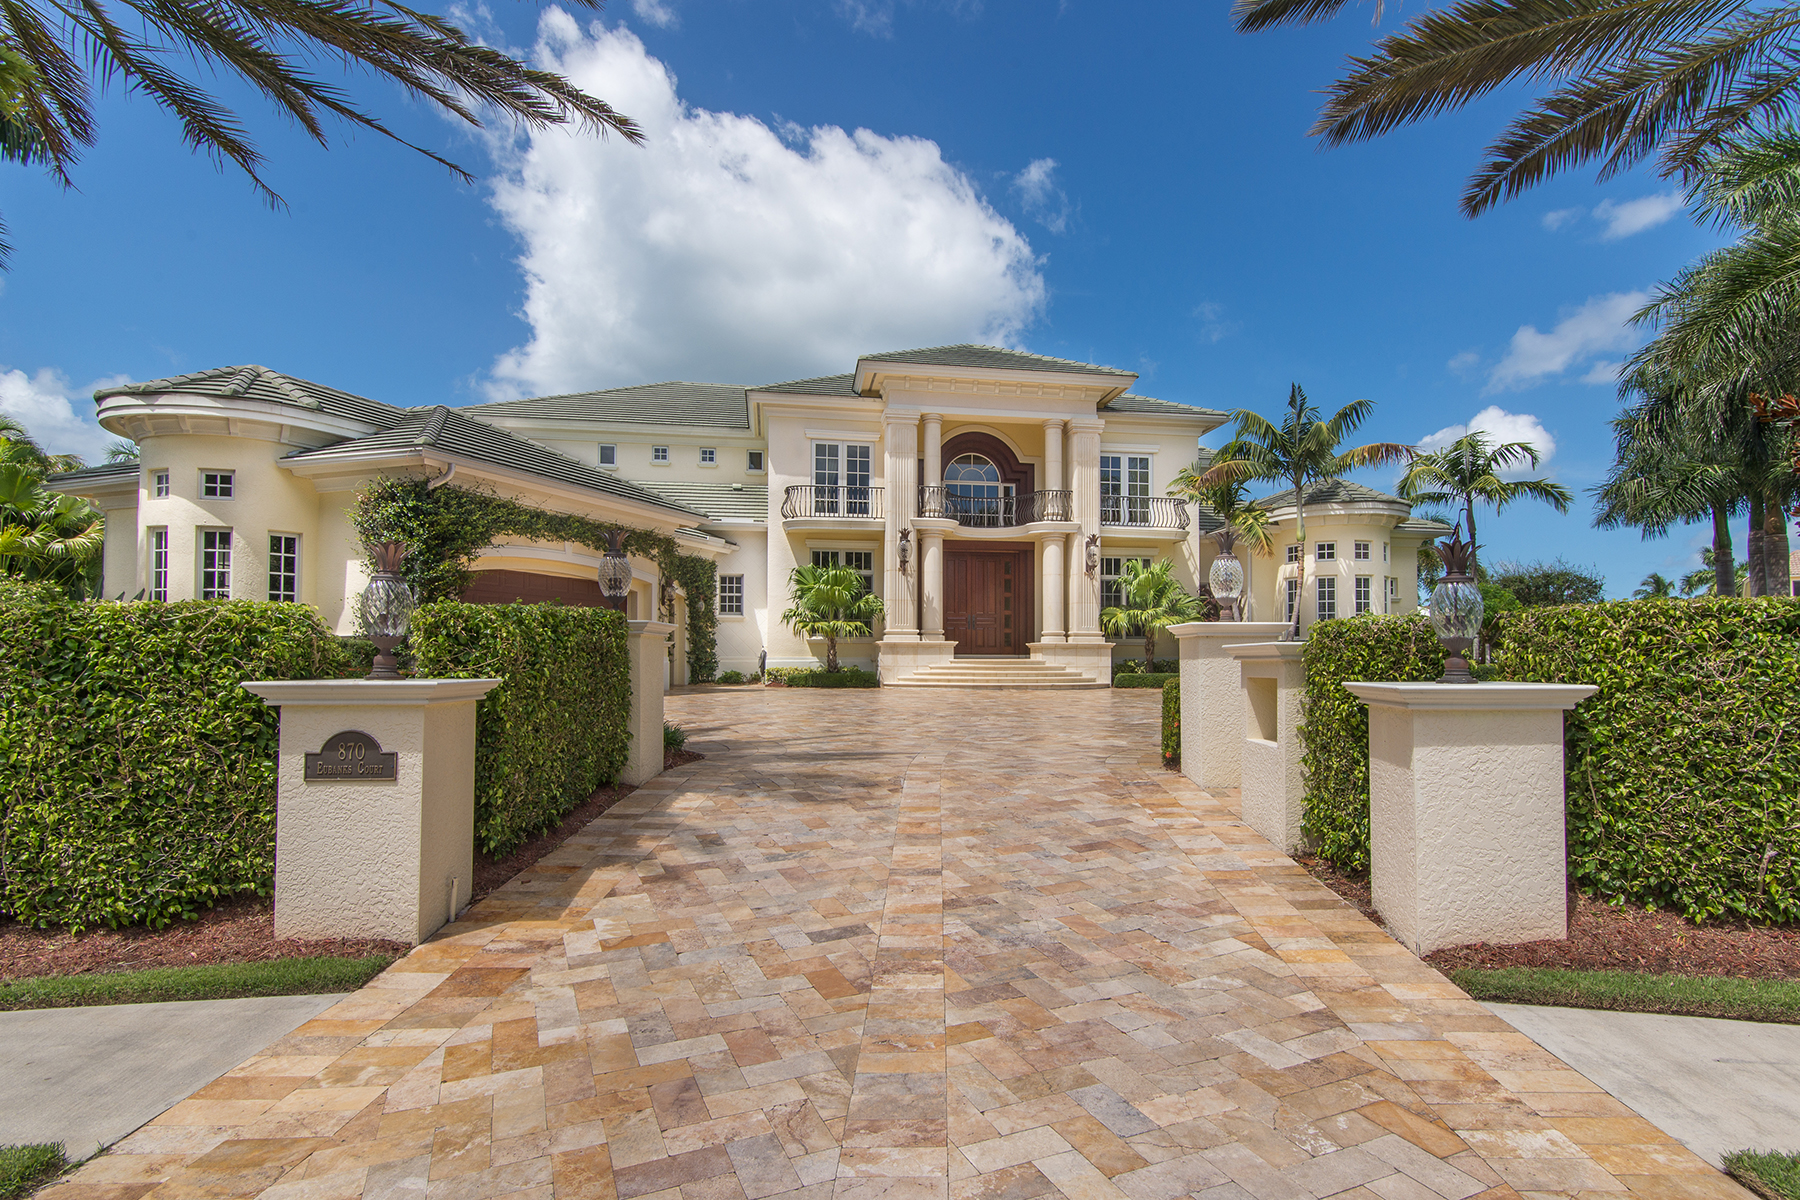 Single Family Home for Sale at MARCO ISLAND - EUBANKS CT 870 Eubanks Ct, Marco Island, Florida 34145 United States